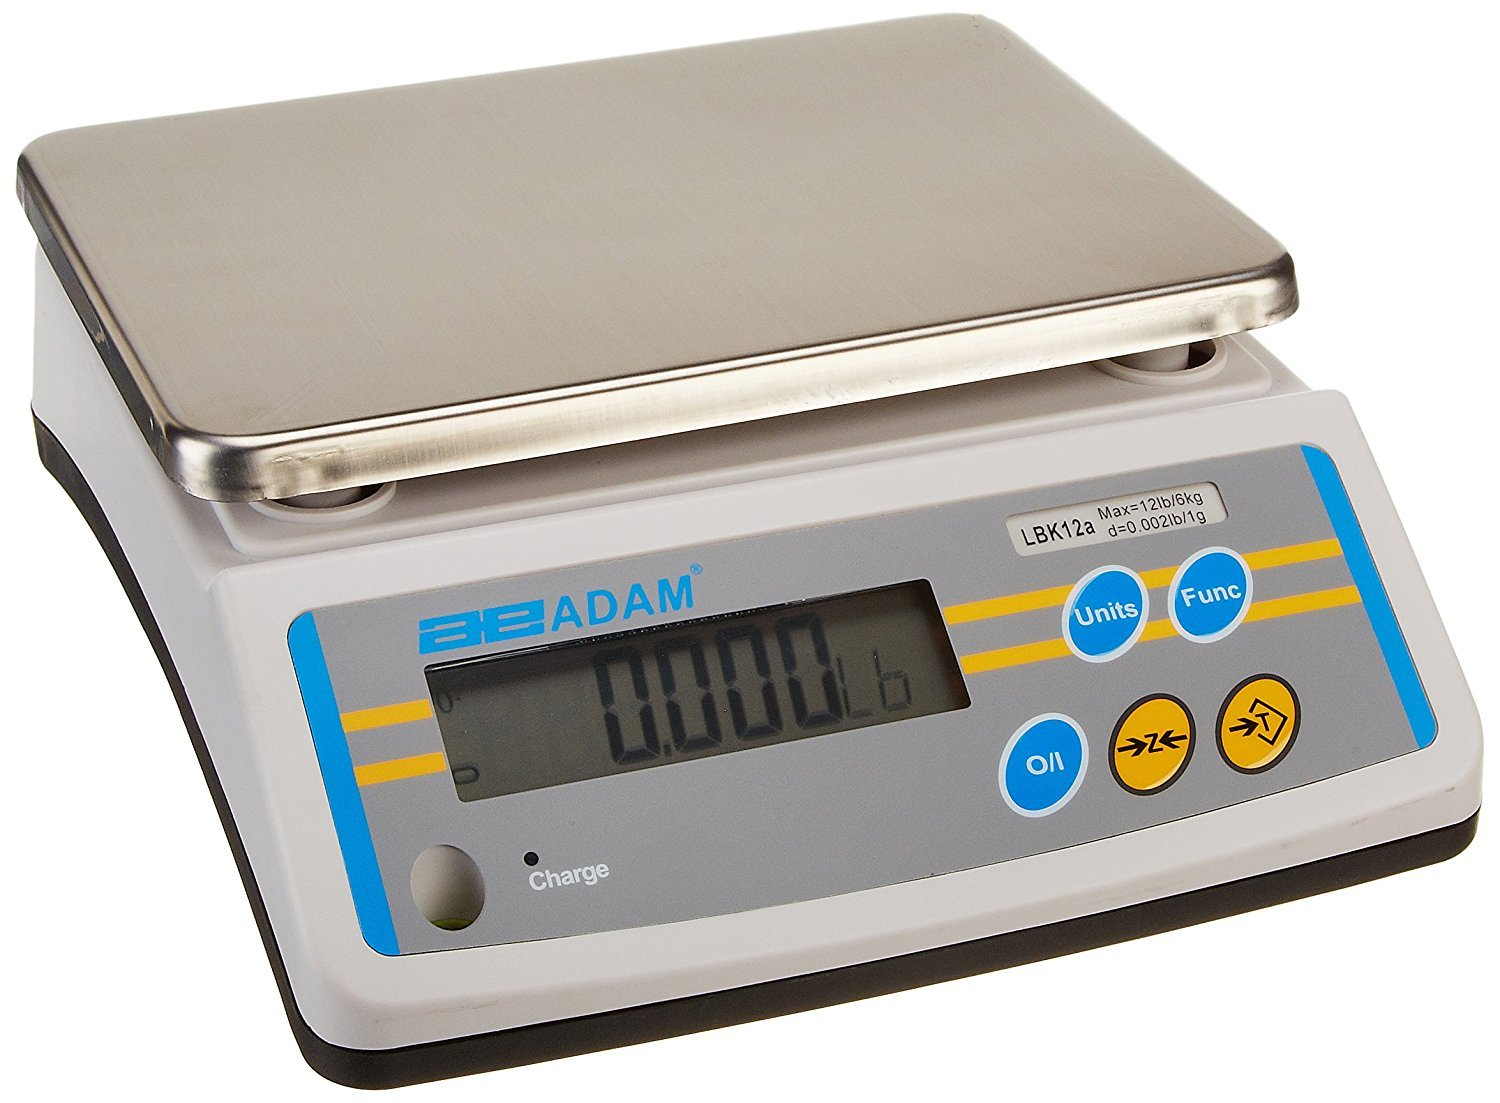 Adam Equipment LBK 12a LBK Weighing Scales, 12lb/6000g Capacity, 0.002lb/1g Readability